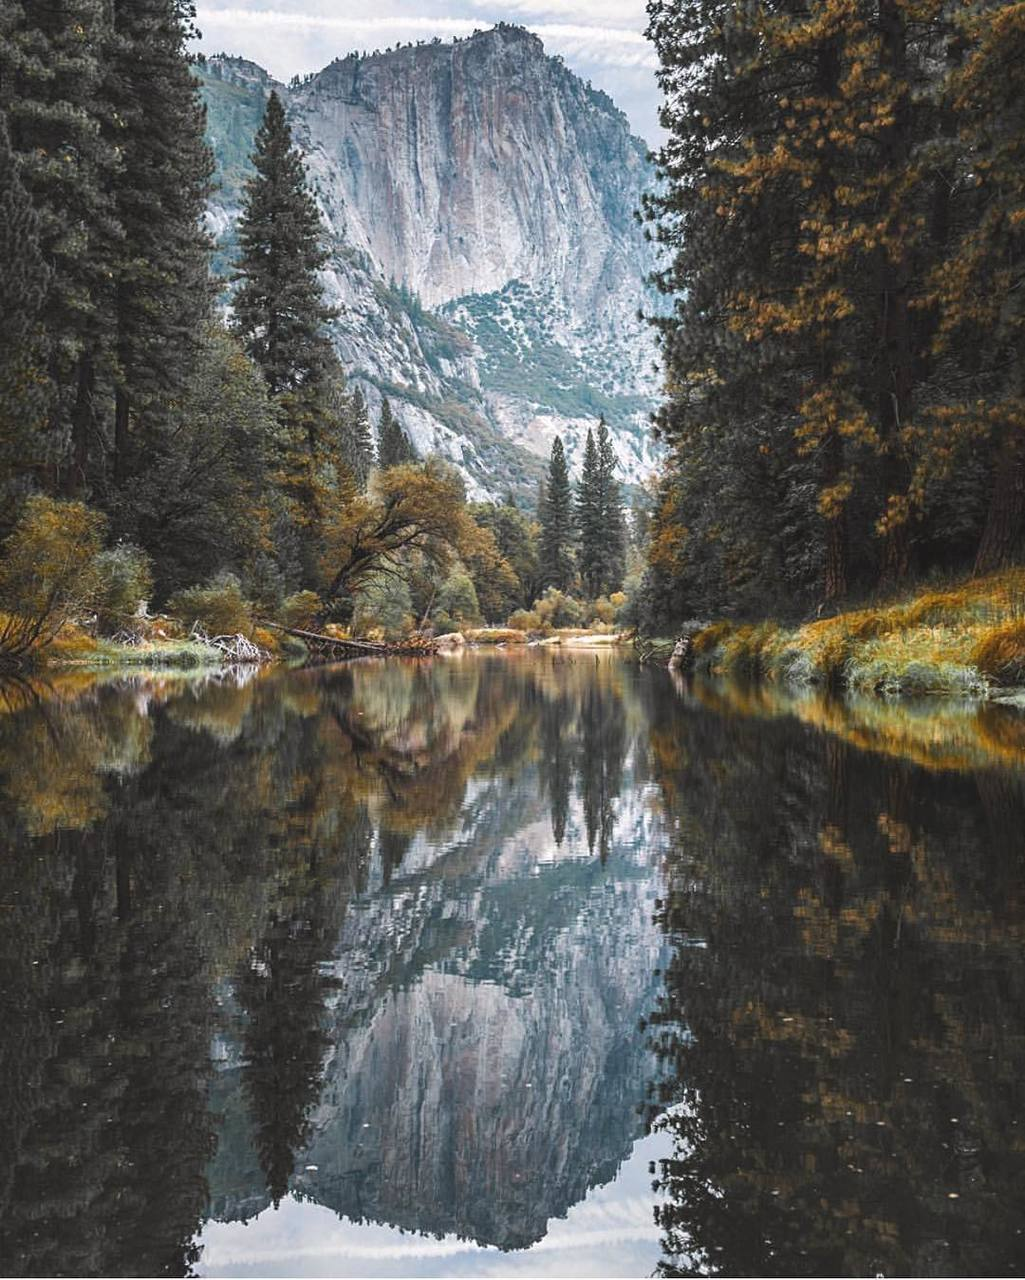 adventure, autumn, cozy, fall, forest